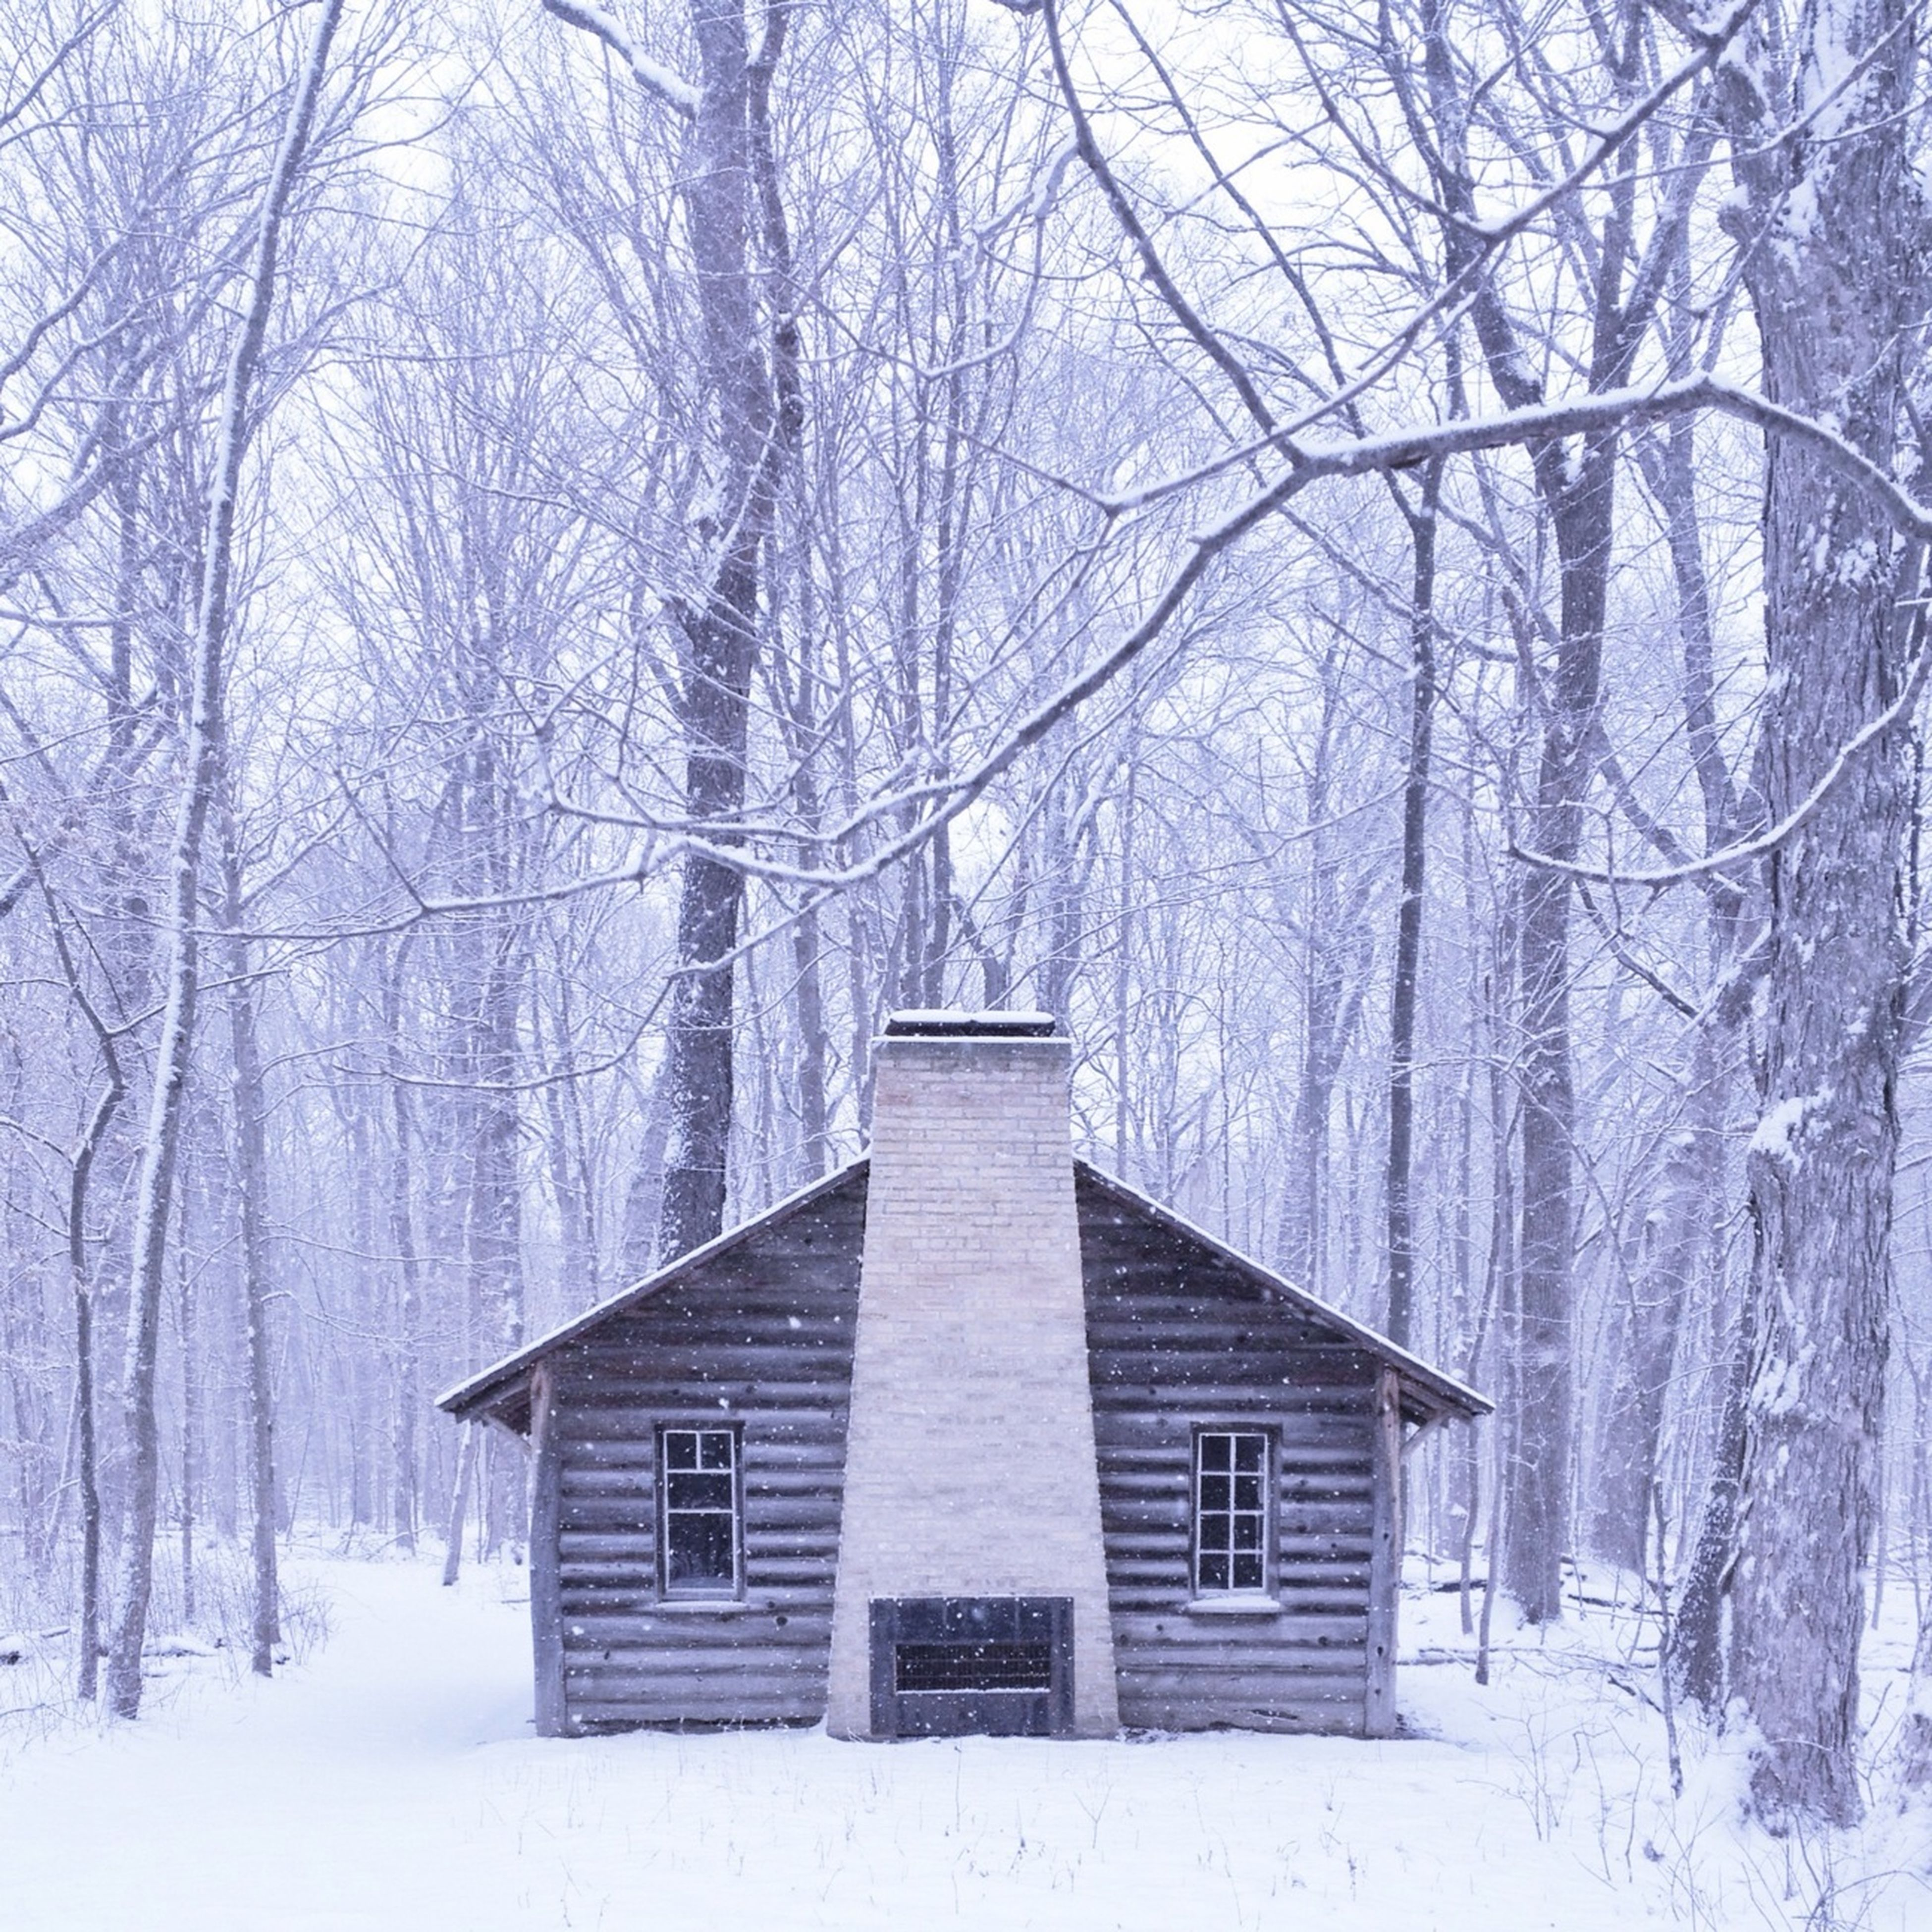 winter, snow, cold temperature, season, bare tree, weather, tree, covering, built structure, architecture, frozen, building exterior, nature, branch, covered, tranquility, tranquil scene, field, beauty in nature, landscape